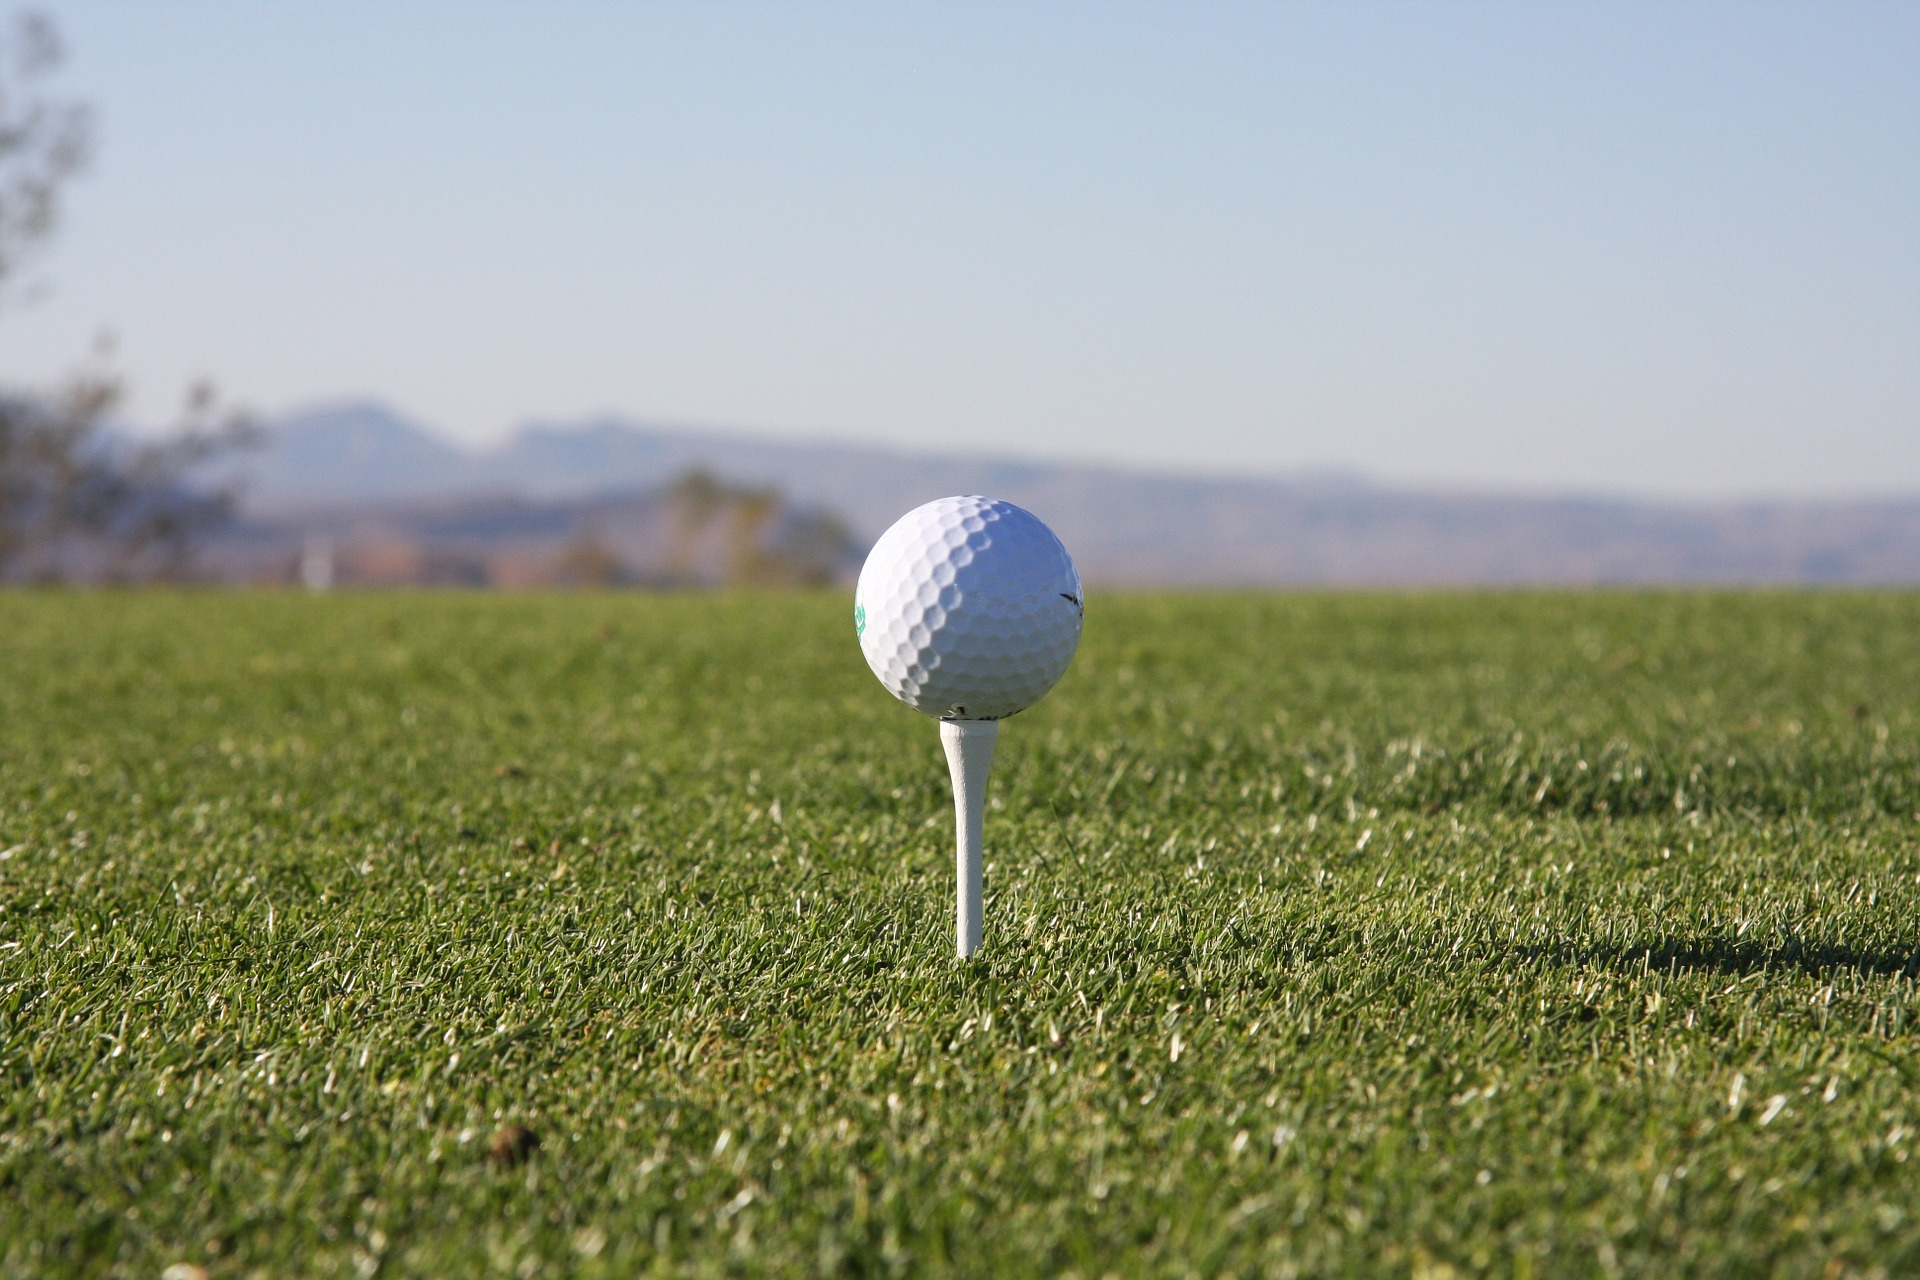 Little known facts about the golf tee with the academy of golf dynamics